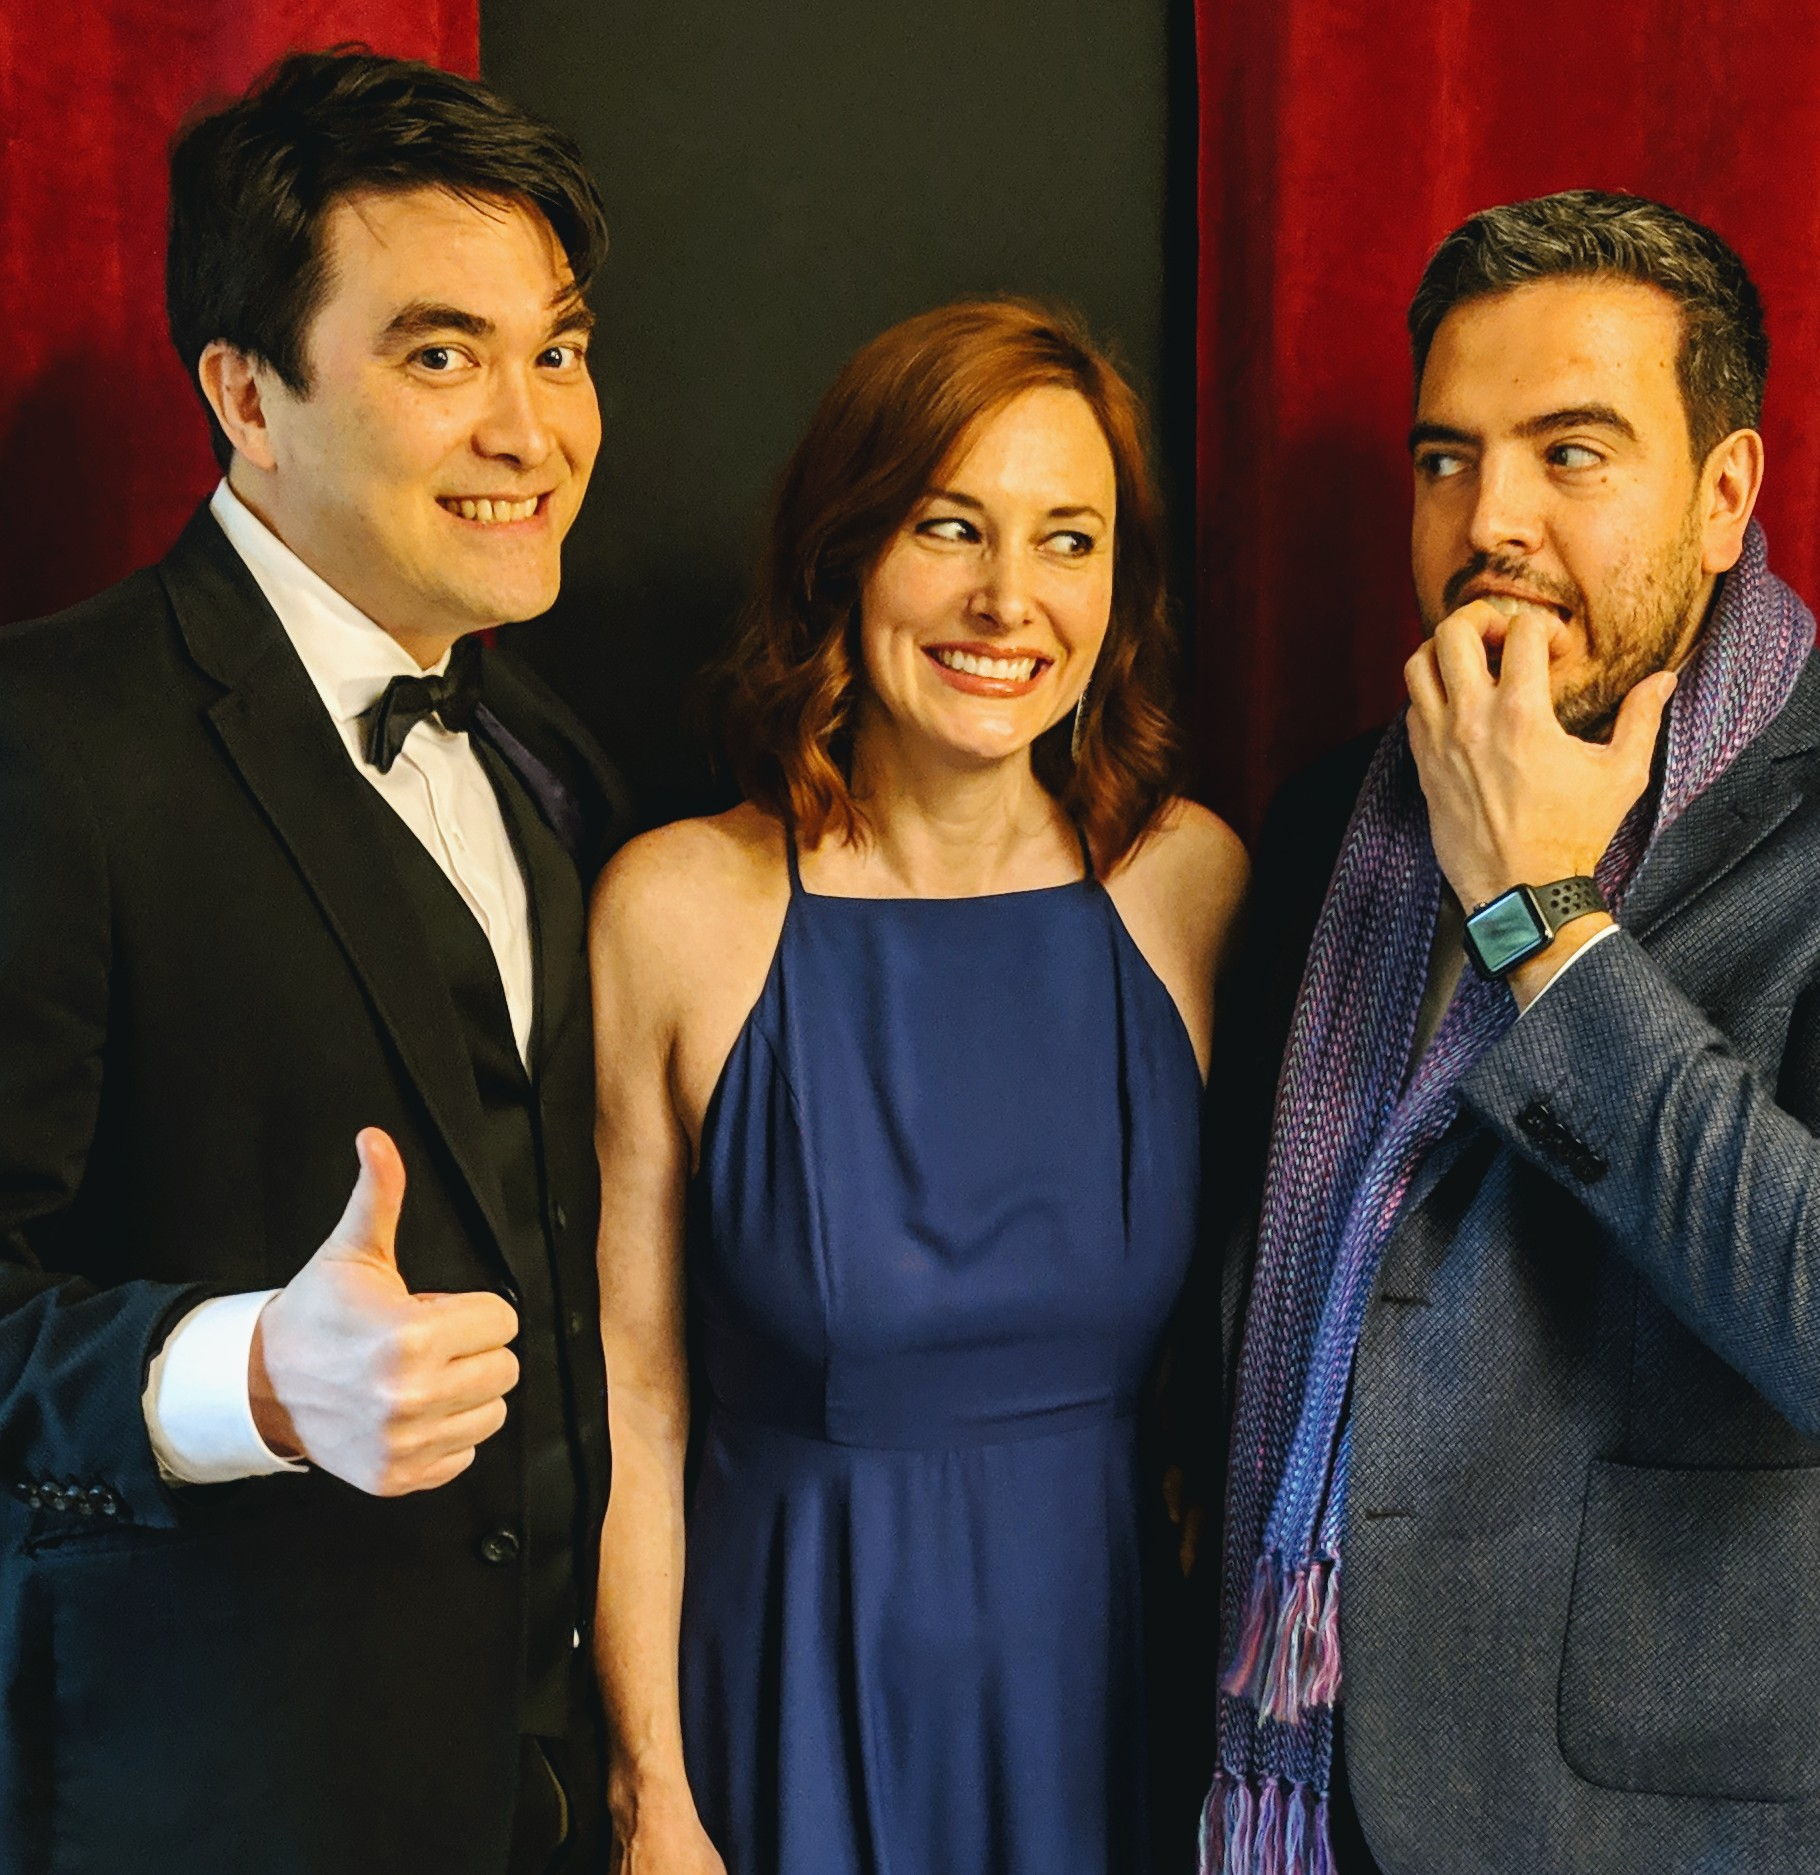 Dr Kirk Honda, Stacy the podcast wife, and Humberto at Oscar Party (2019)